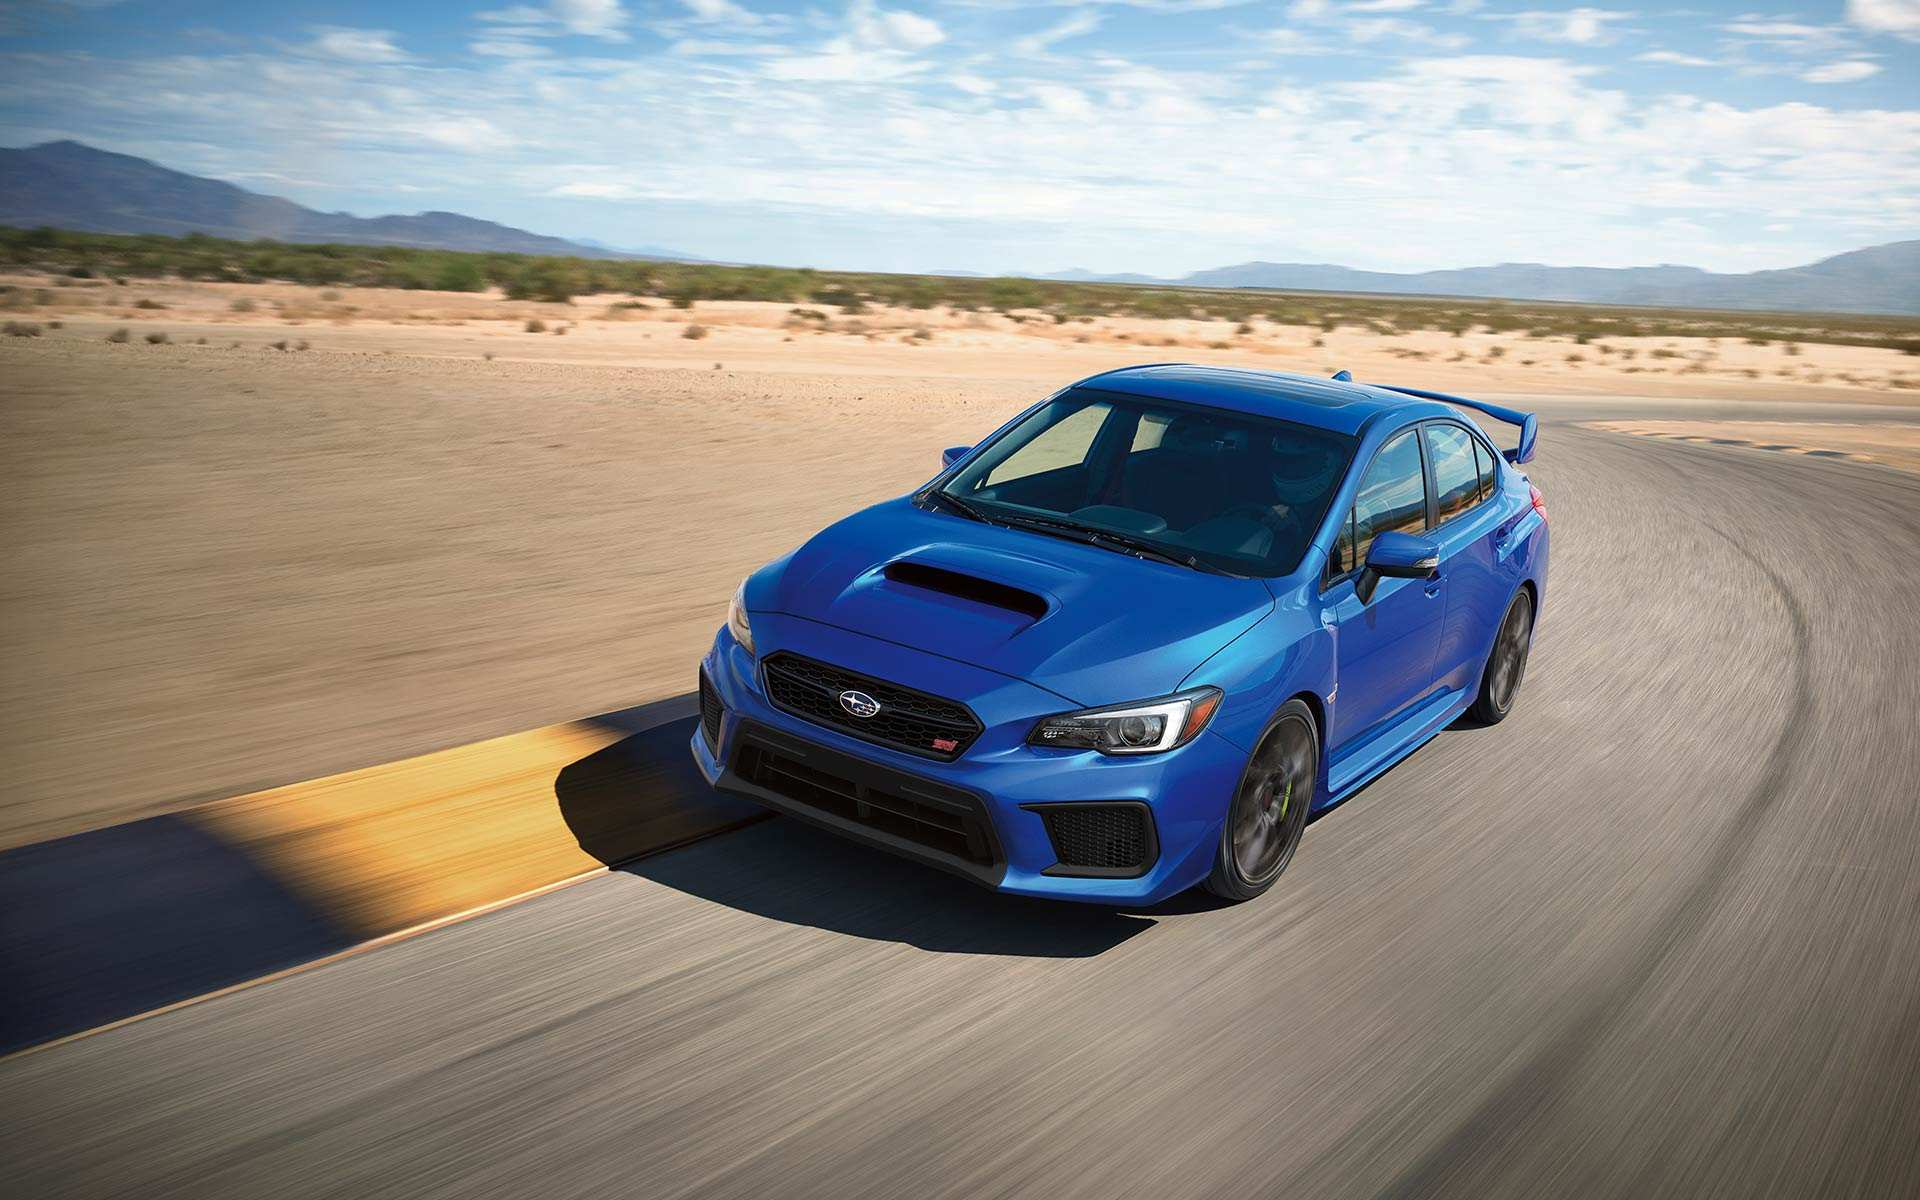 20 New Sti Subaru 2019 Release Date And Concept